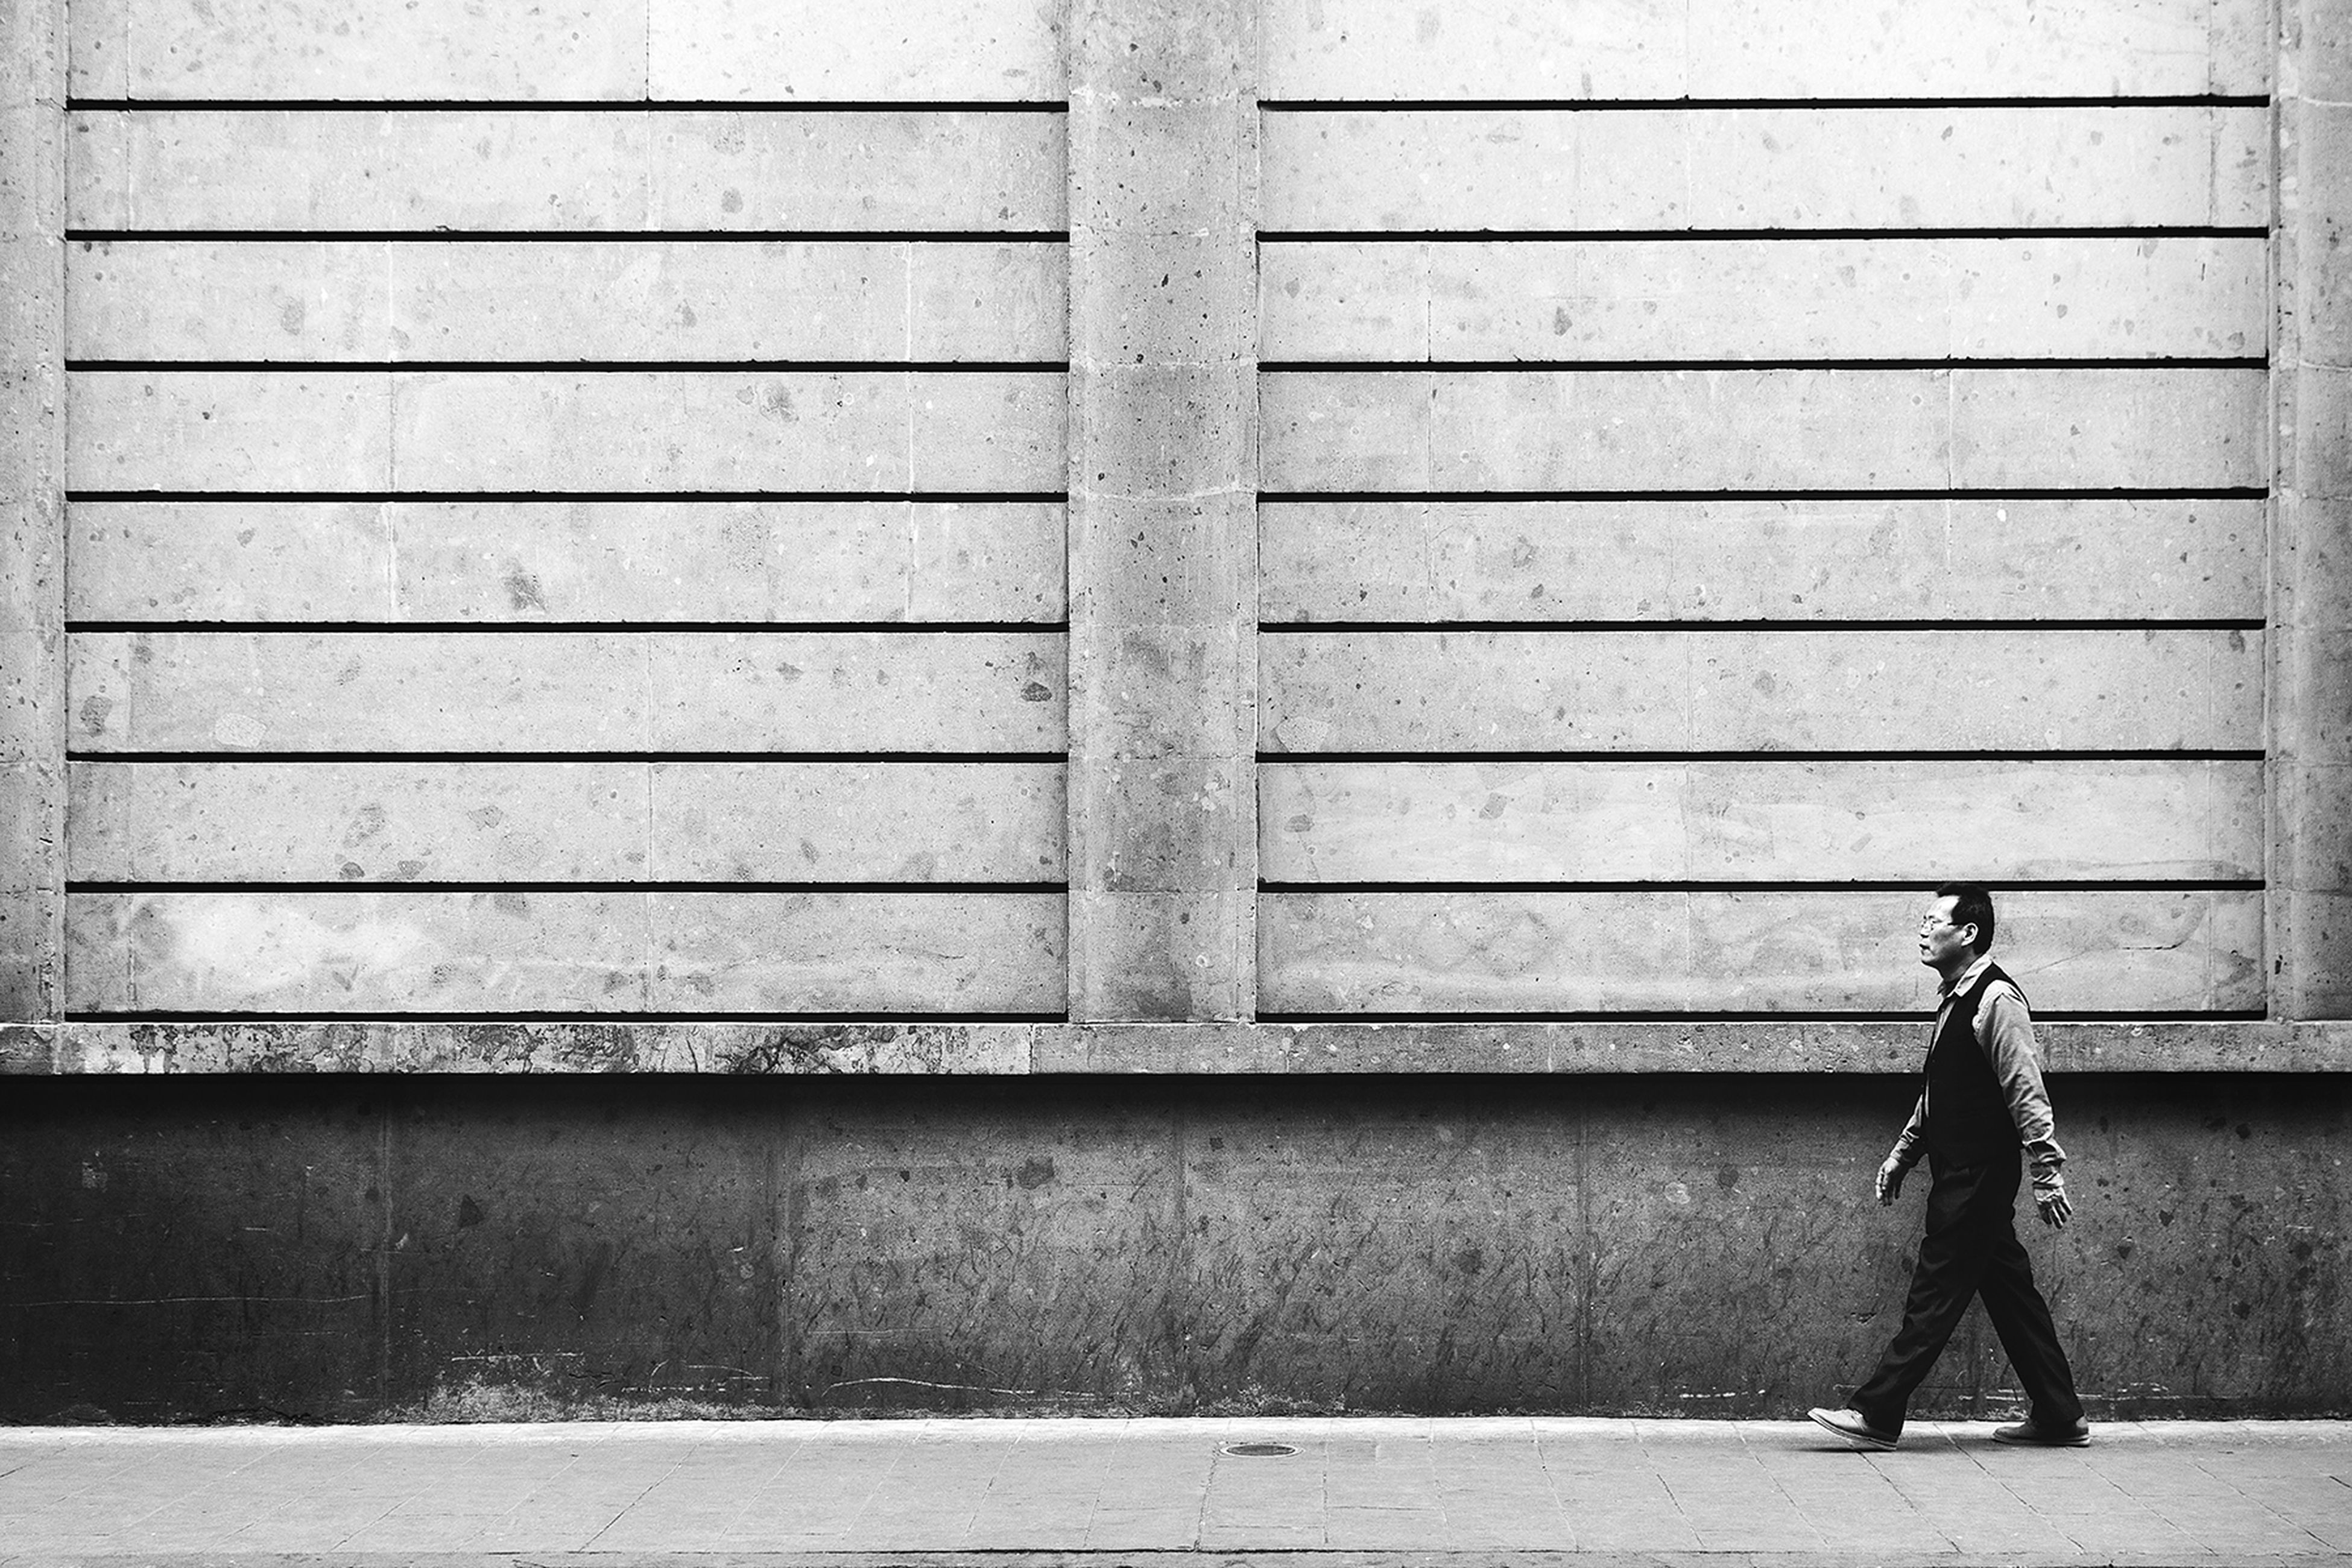 full length, walking, day, casual clothing, outdoors, innocence, repetition, architectural feature, footpath